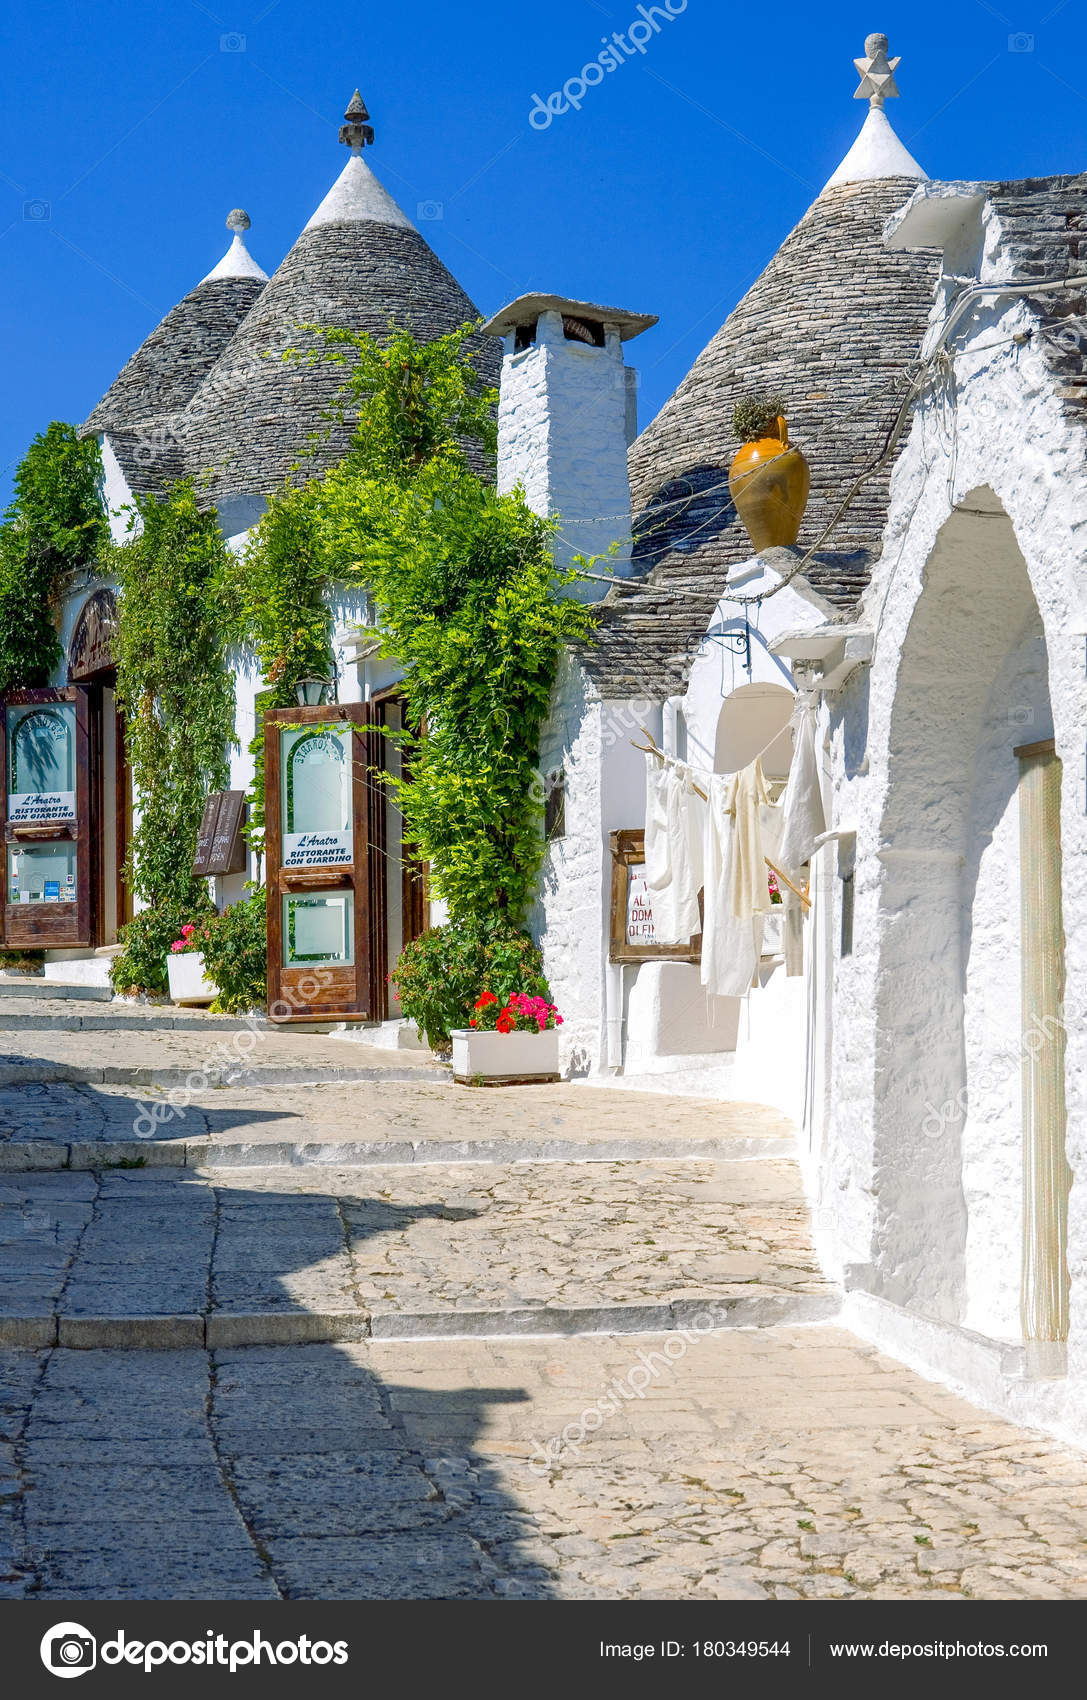 Ristoranti Alberobello The Trulli Of Alberobello Stock Editorial Photo Giuseppemasci